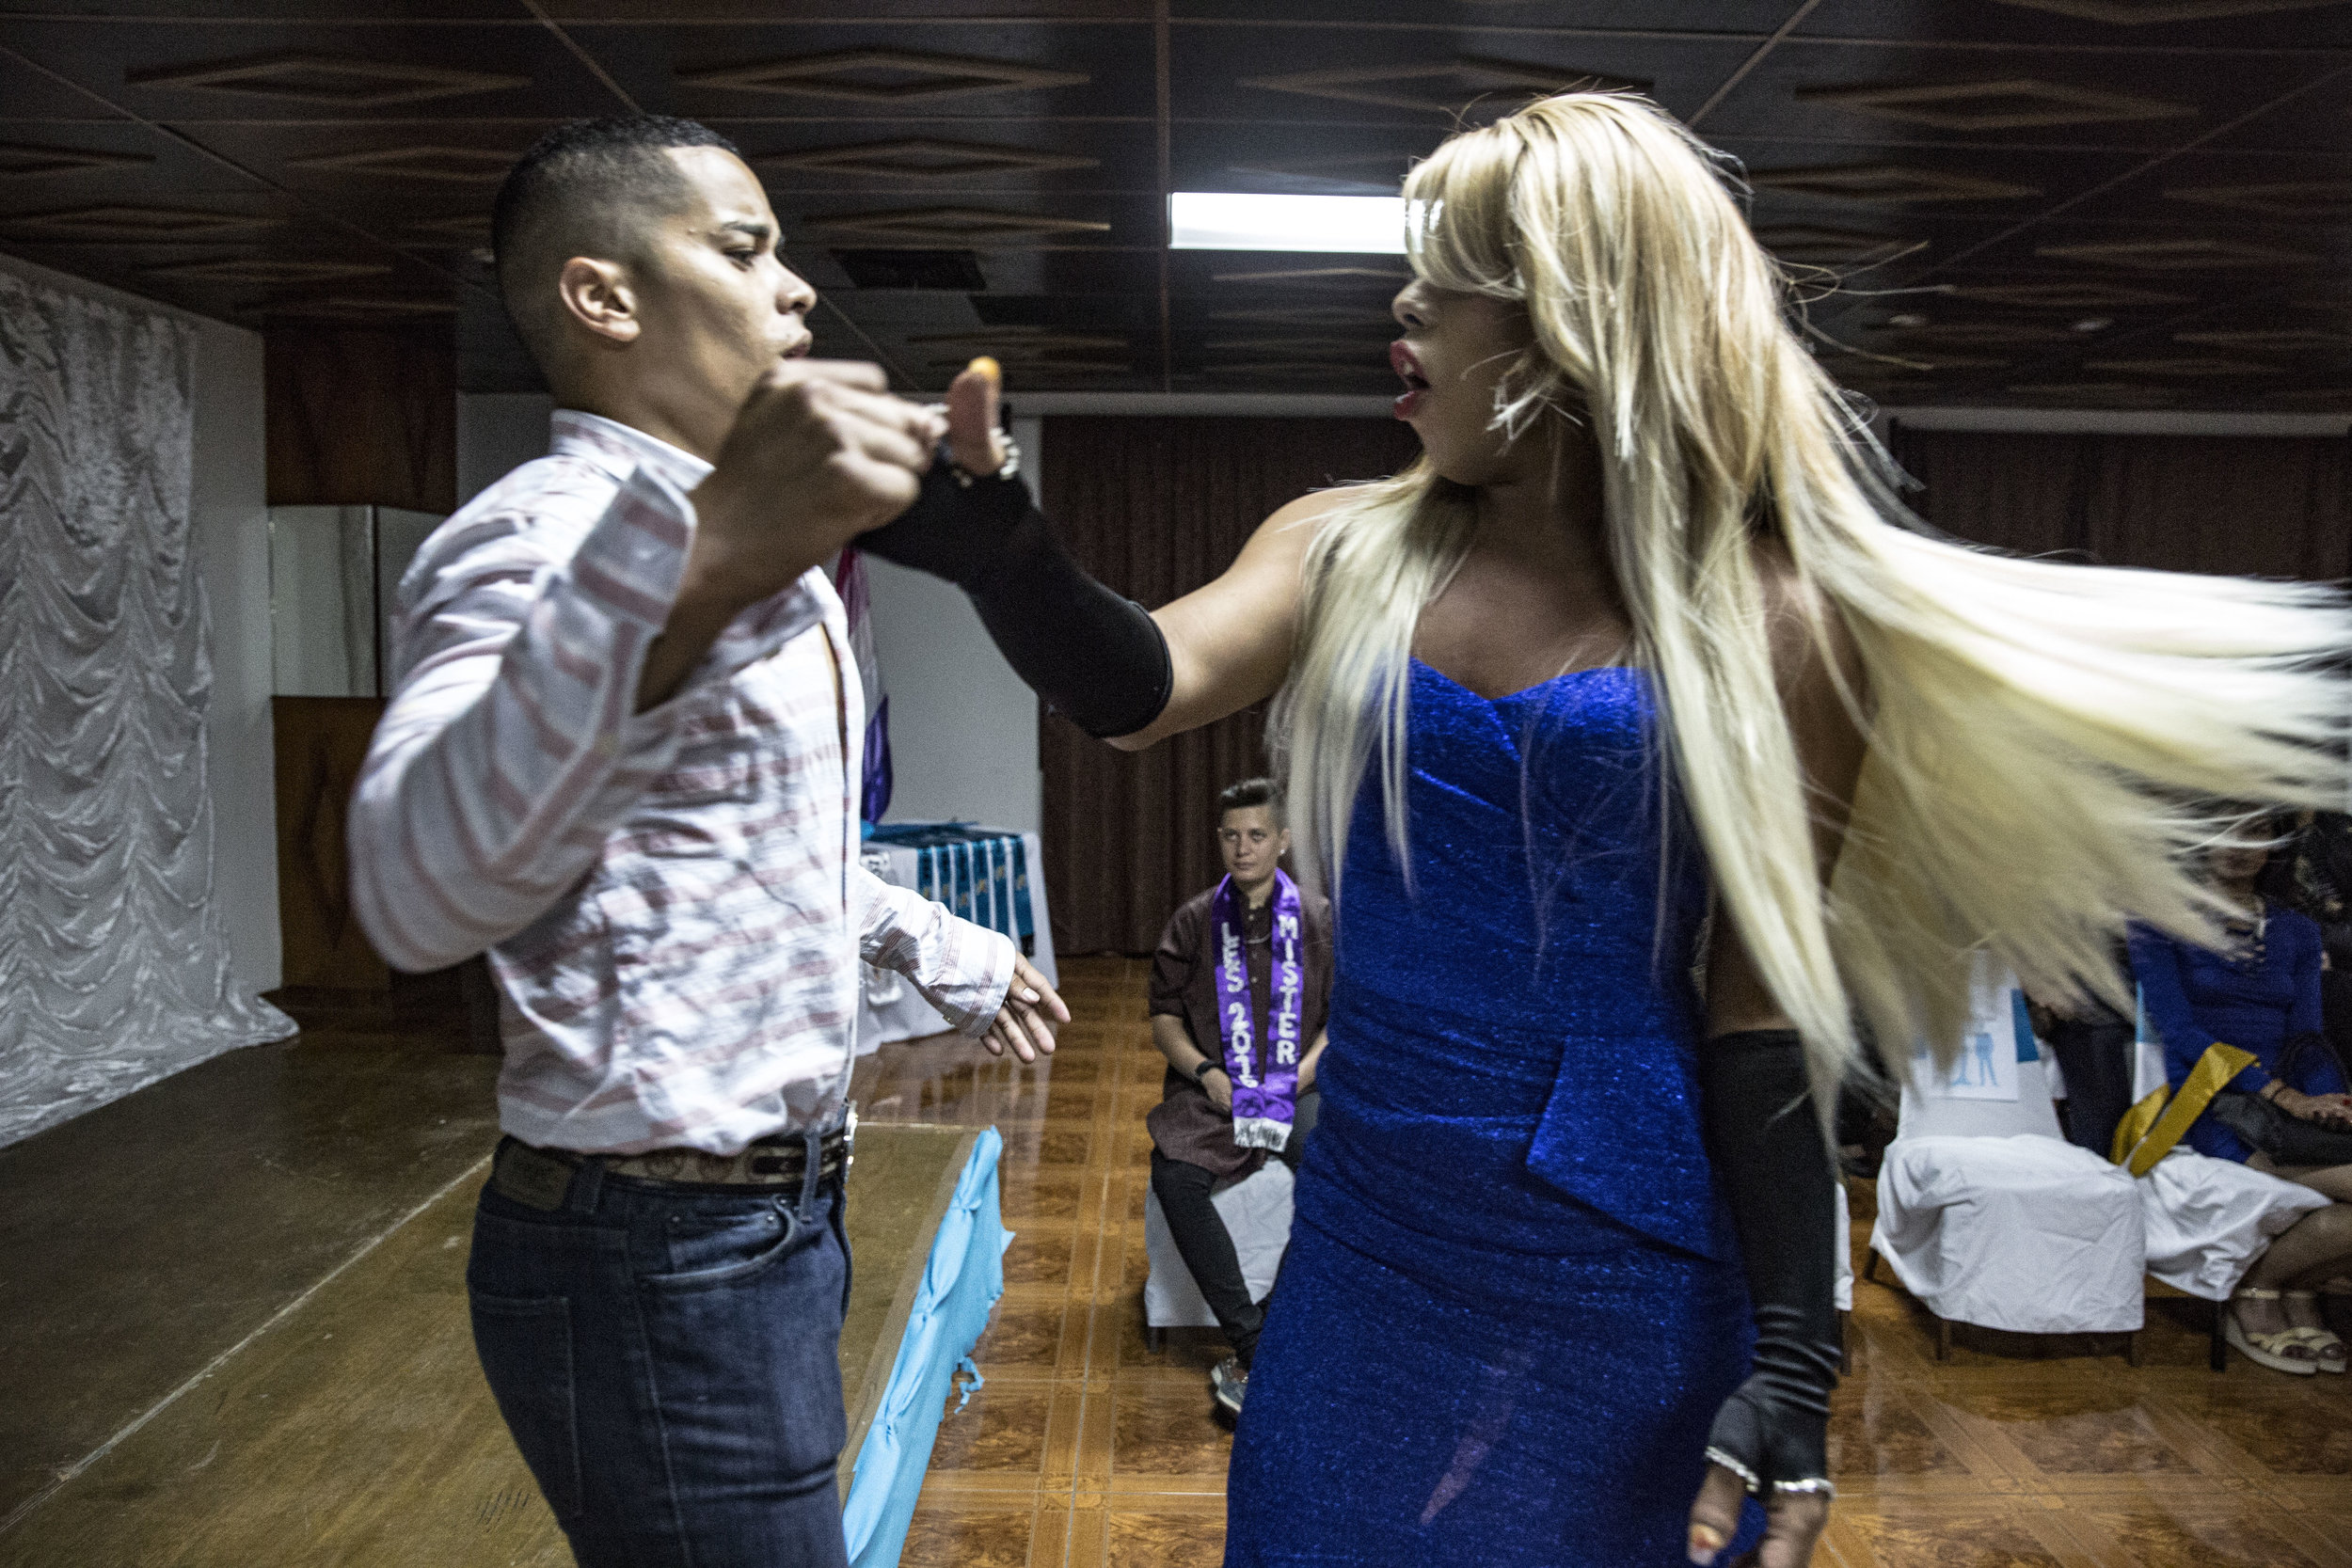 """Darwin does his show at the beauty contest """"Miss Arcoiris"""". Arcoiris in spanish means """"rainbow"""" and it is an organization that advocates for LGBT rights in the country. His brother Marco, also known as Shirley, was an activist of the organization as well."""